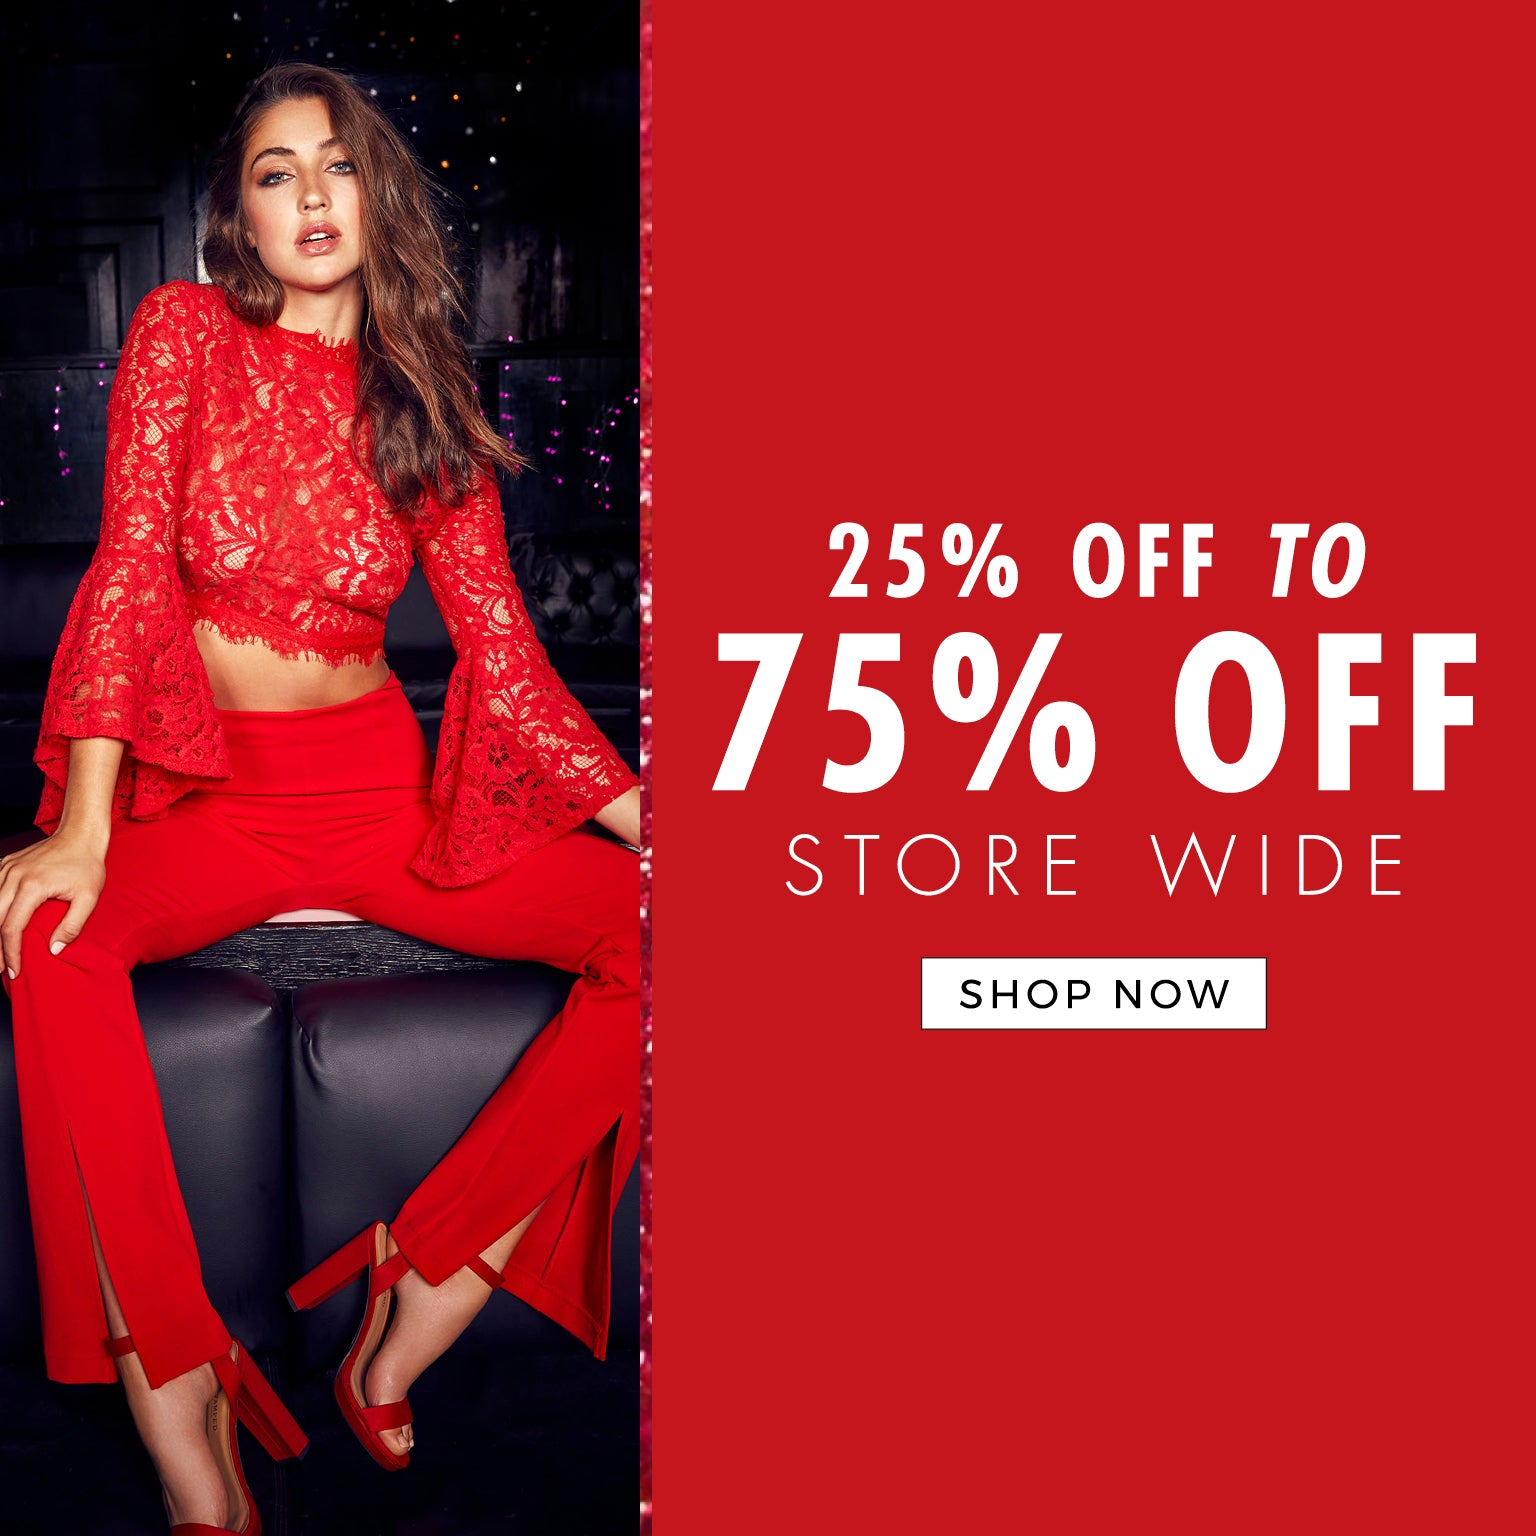 25% Off to 75% Off Store Wide